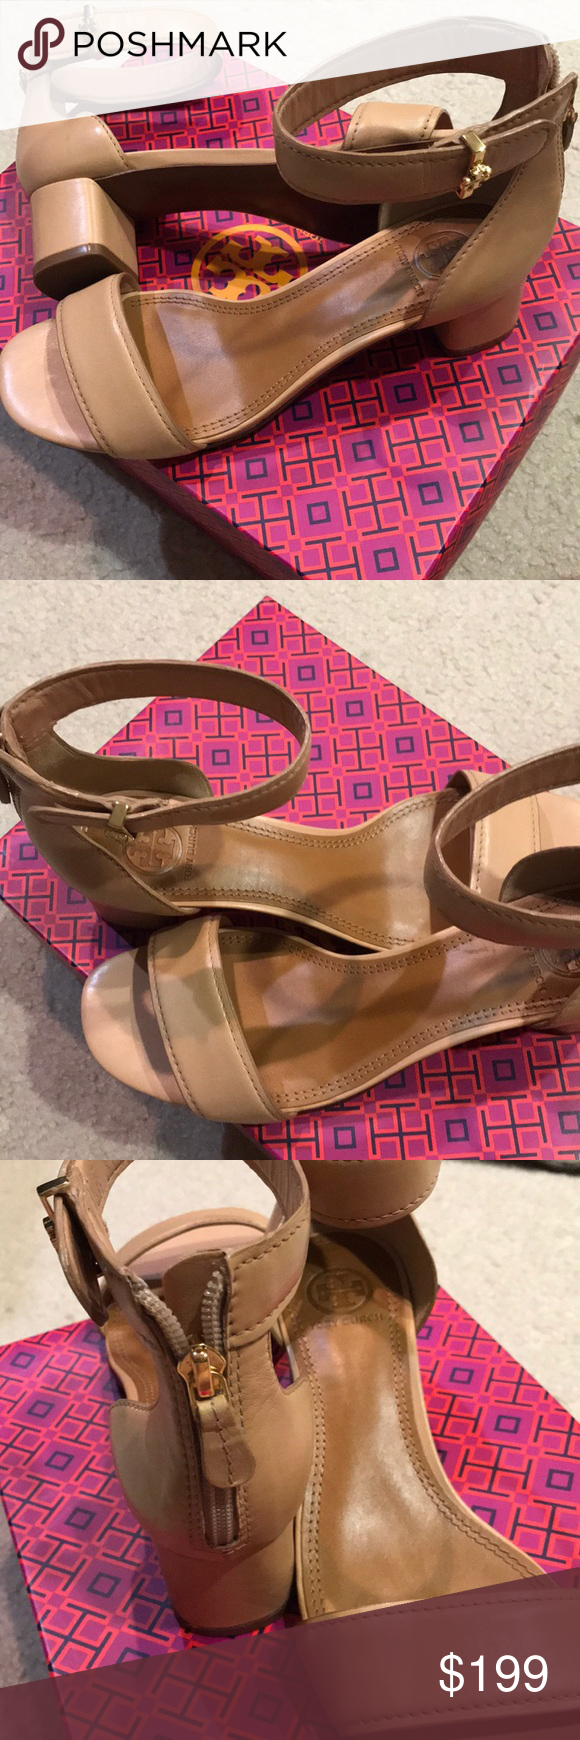 NWB Authentic Tory Burch soft leather sandals sz 8